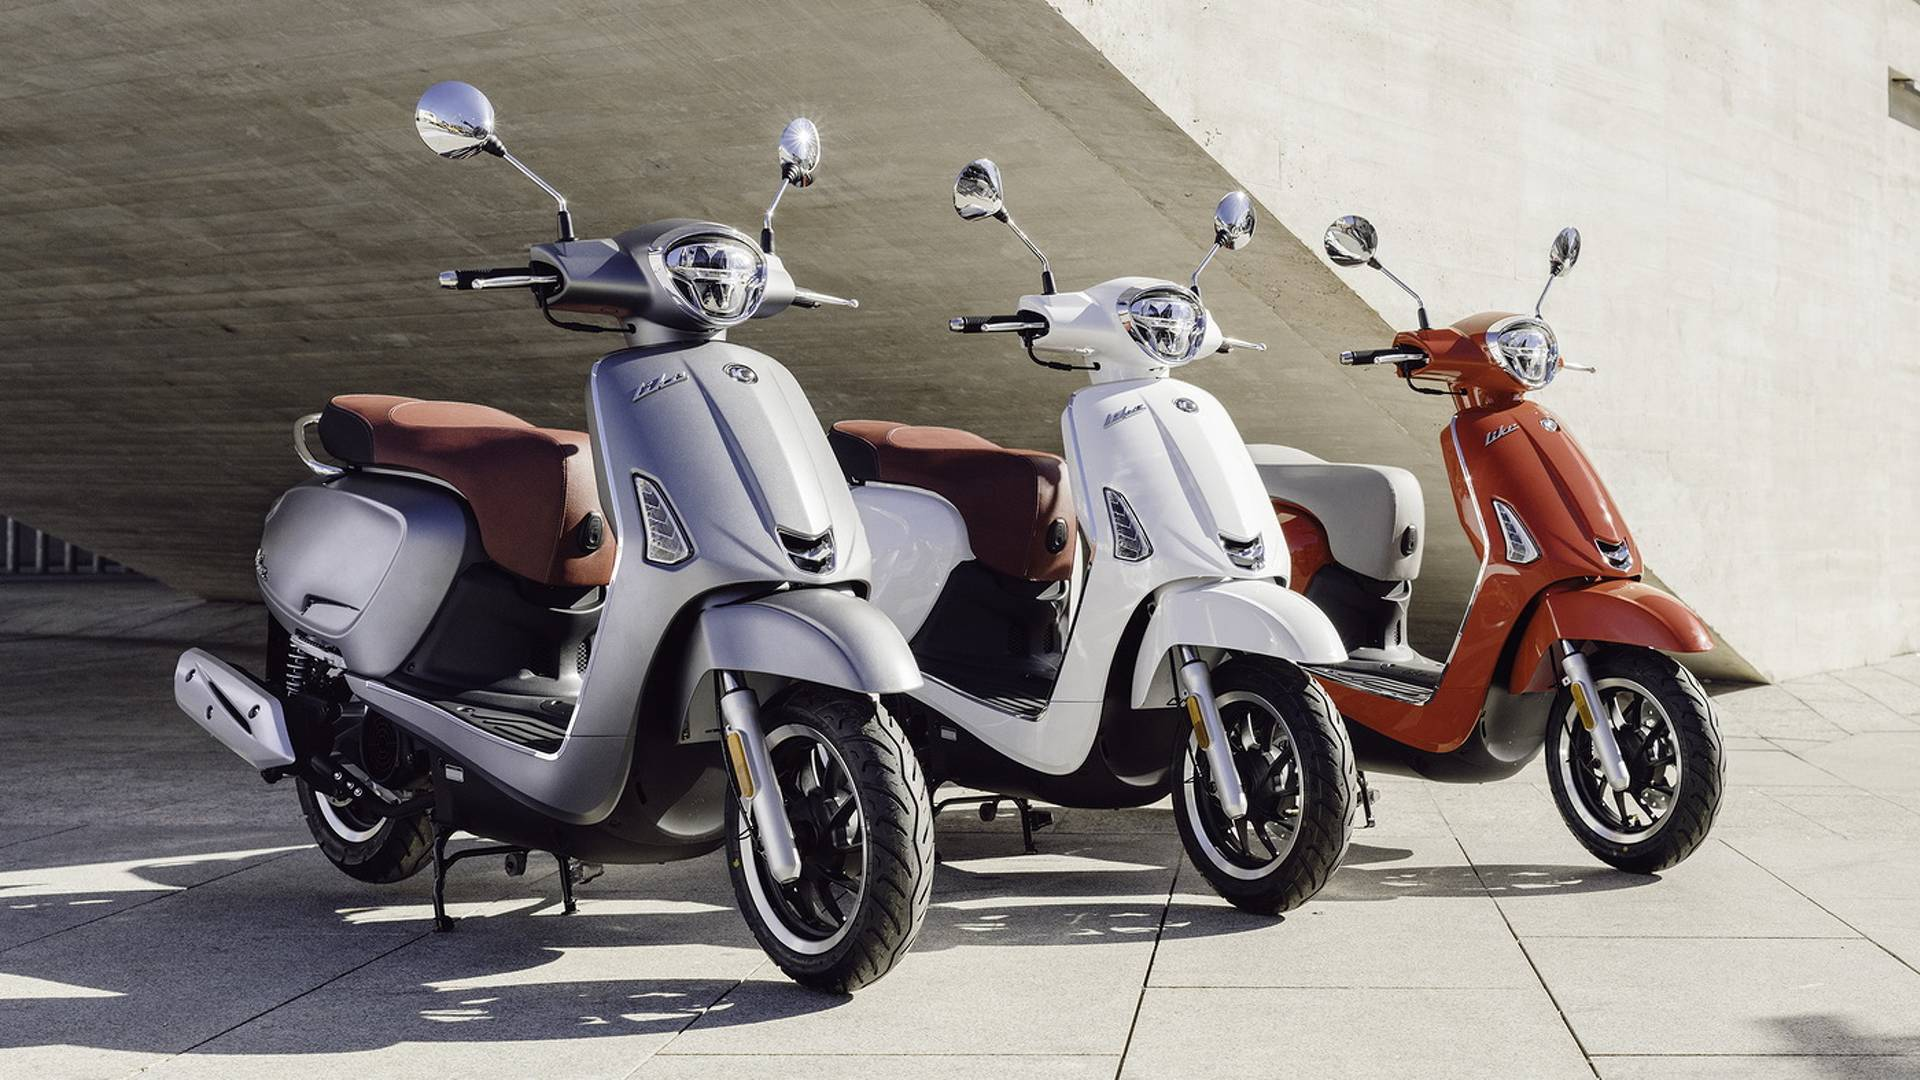 kymco like 125i 150i euro4 abs le moto di scaglione ricambi moto e scooter palermo. Black Bedroom Furniture Sets. Home Design Ideas